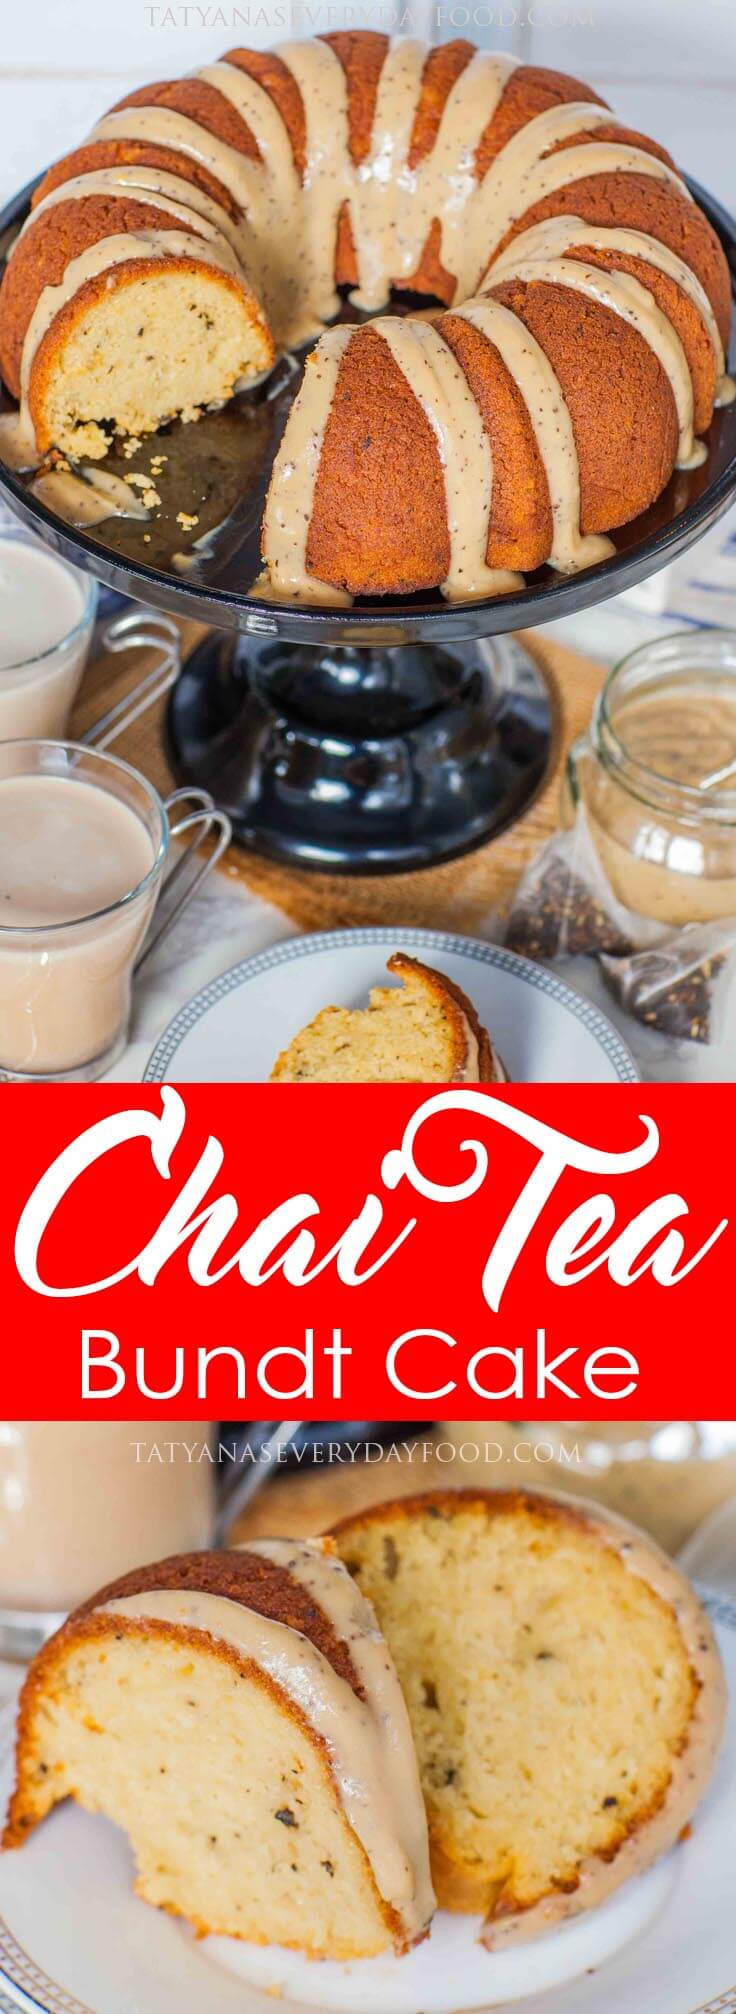 Chai Tea Bundt Cake video recipe